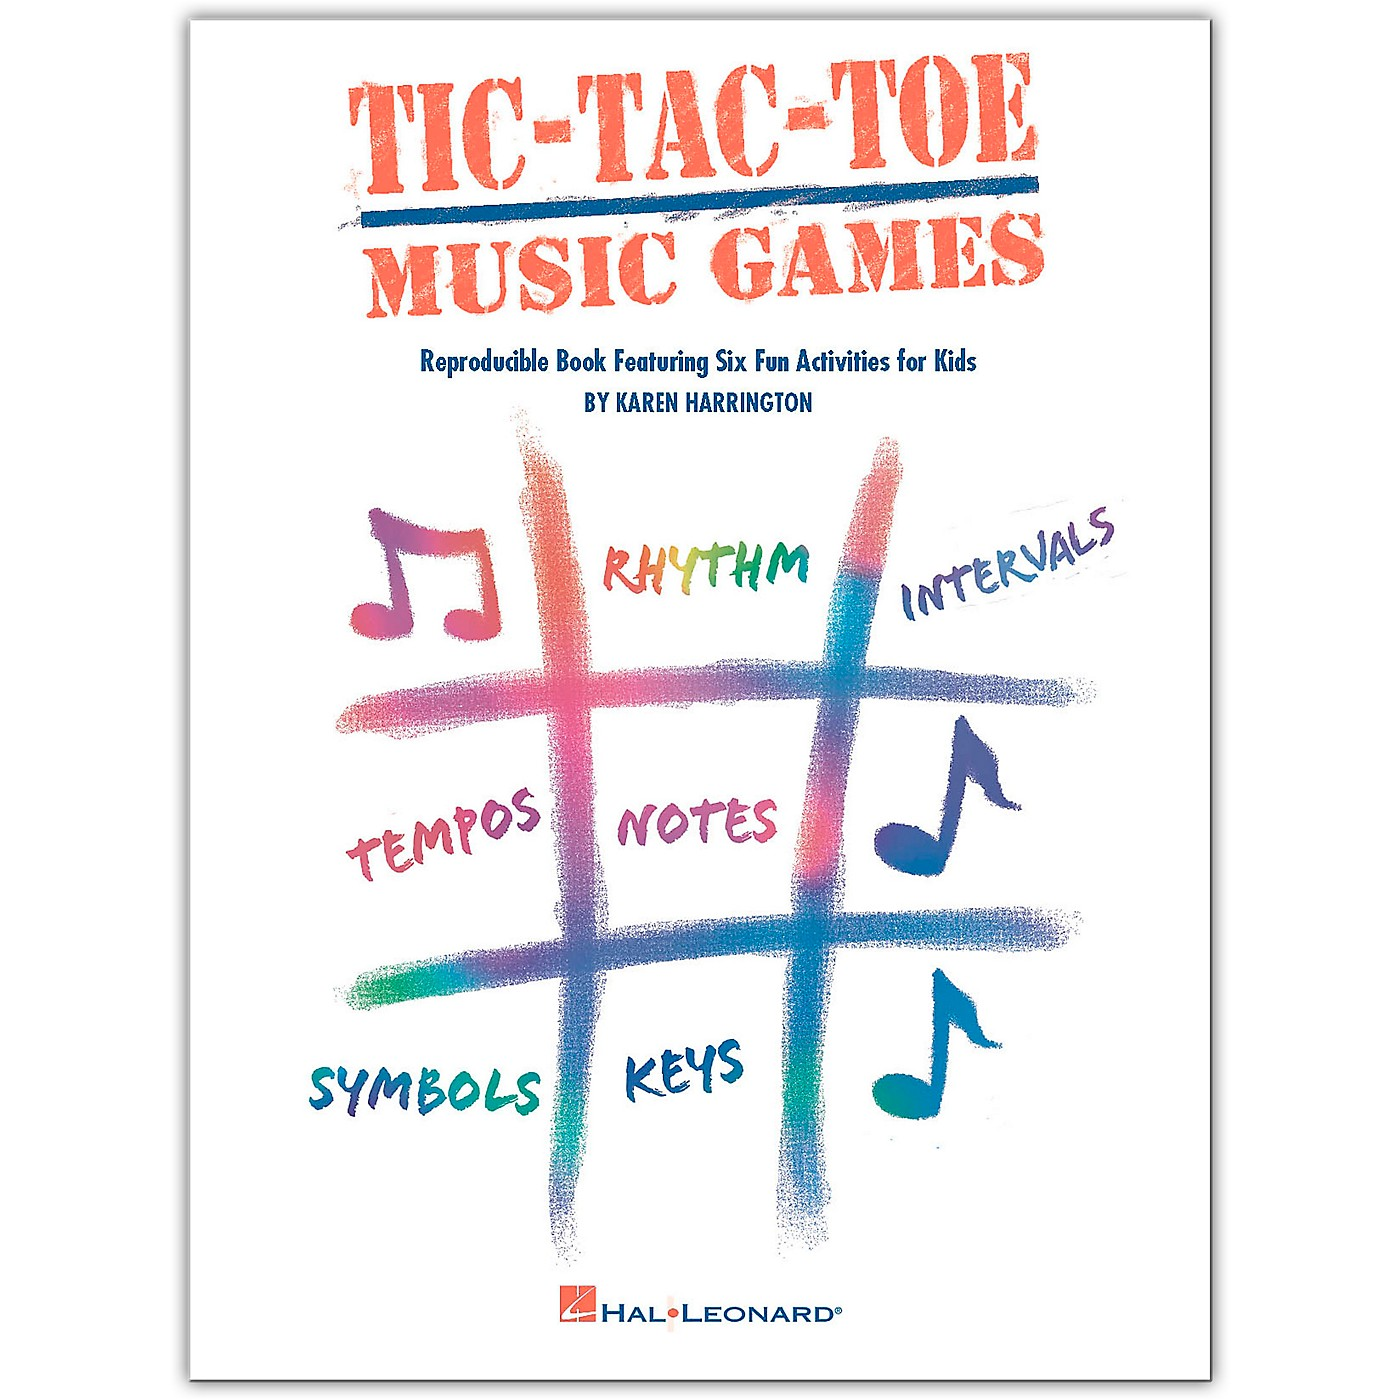 Hal Leonard Tic-Tac-Toe Music Games Reproducible Book Featuring Six Fun Activities For Kids by Harrington thumbnail